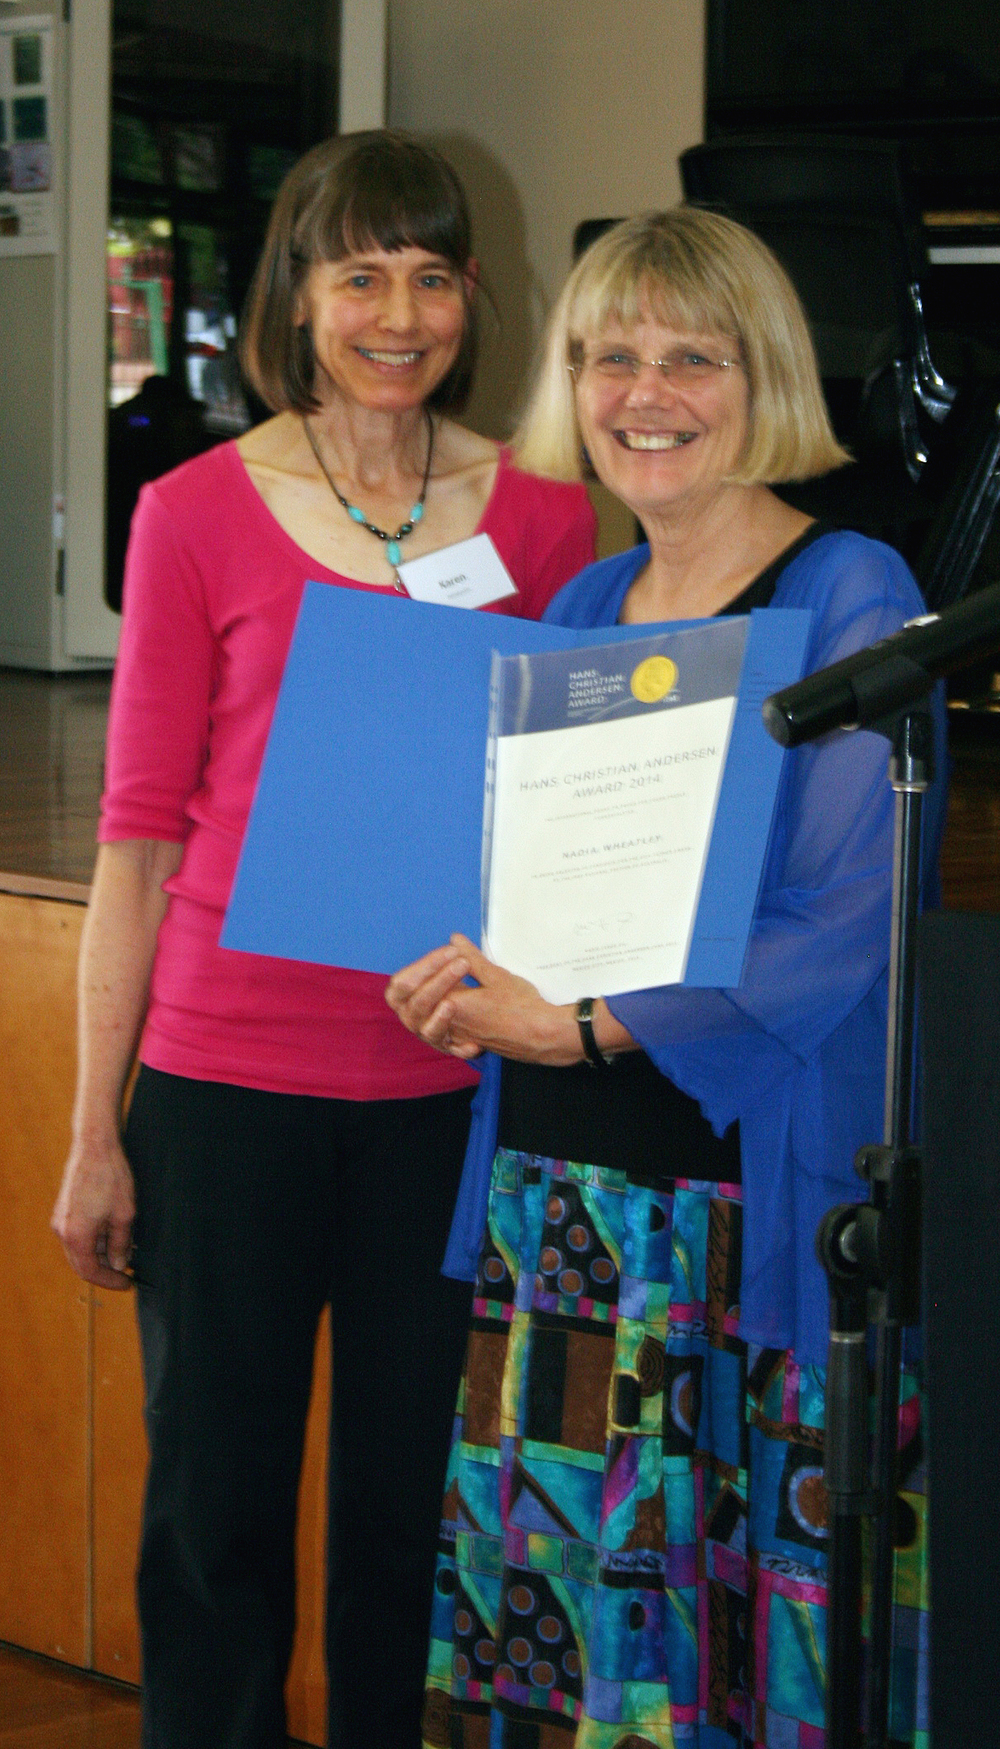 Receiving certificate for Hans Christian Andersen nomination at IBBY event, 2015.